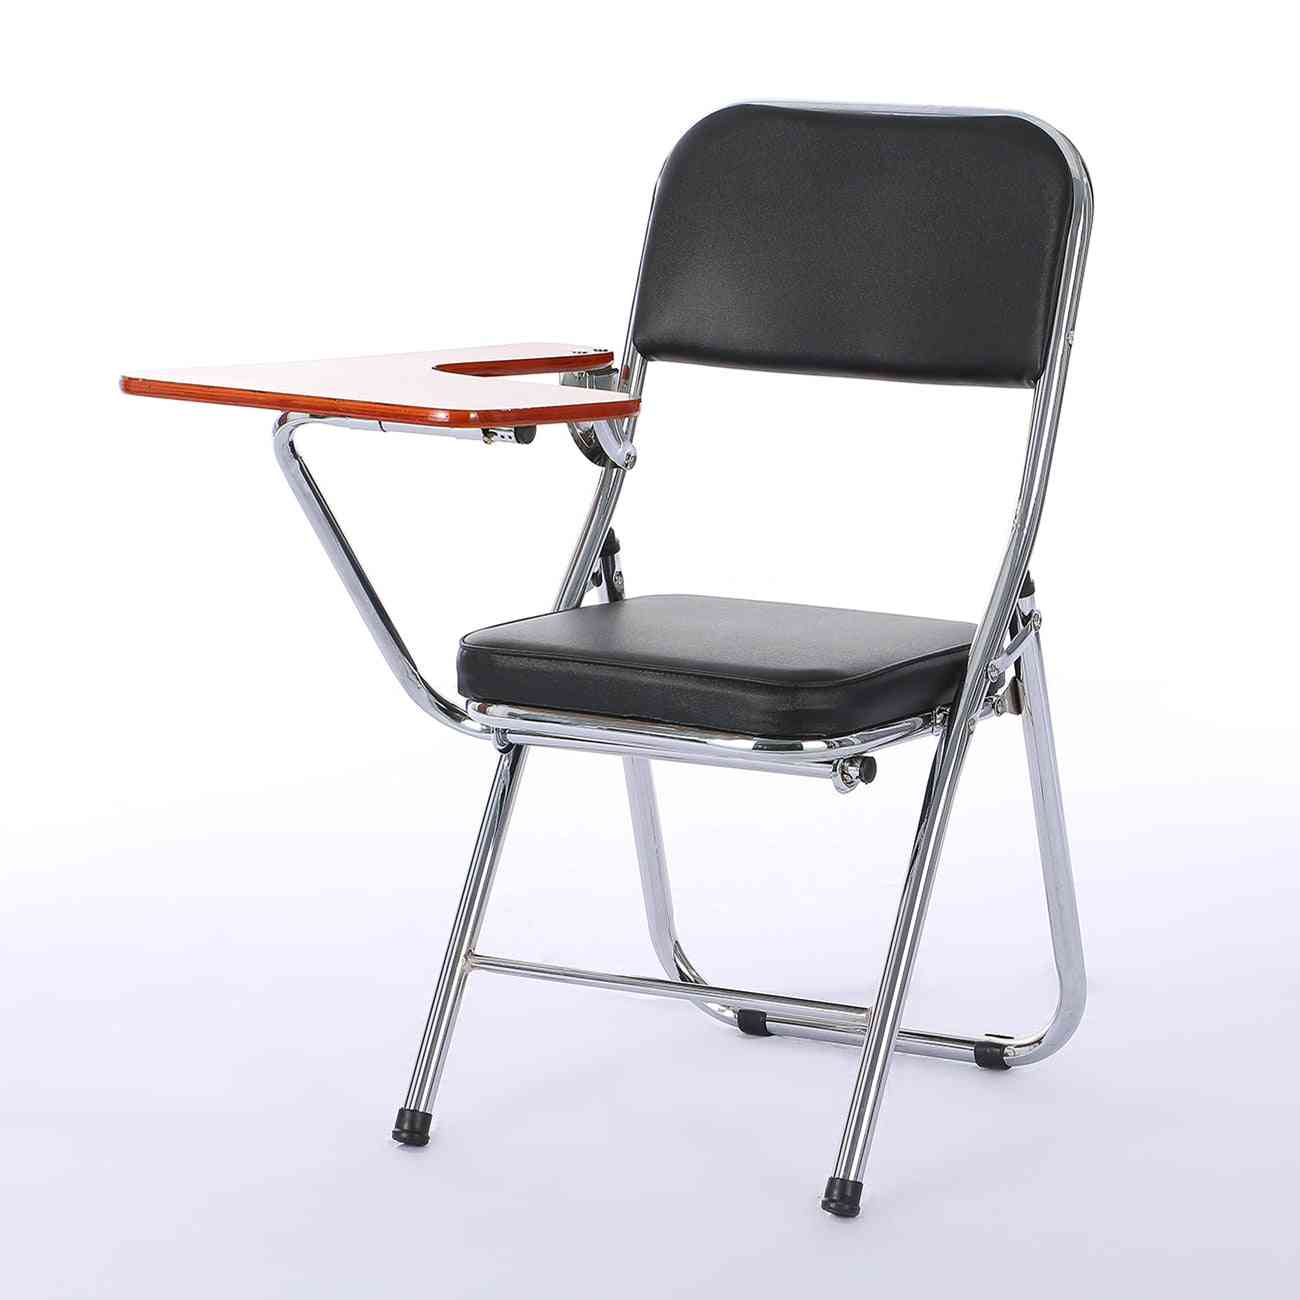 Staff Training Chair With Writing Board For Student